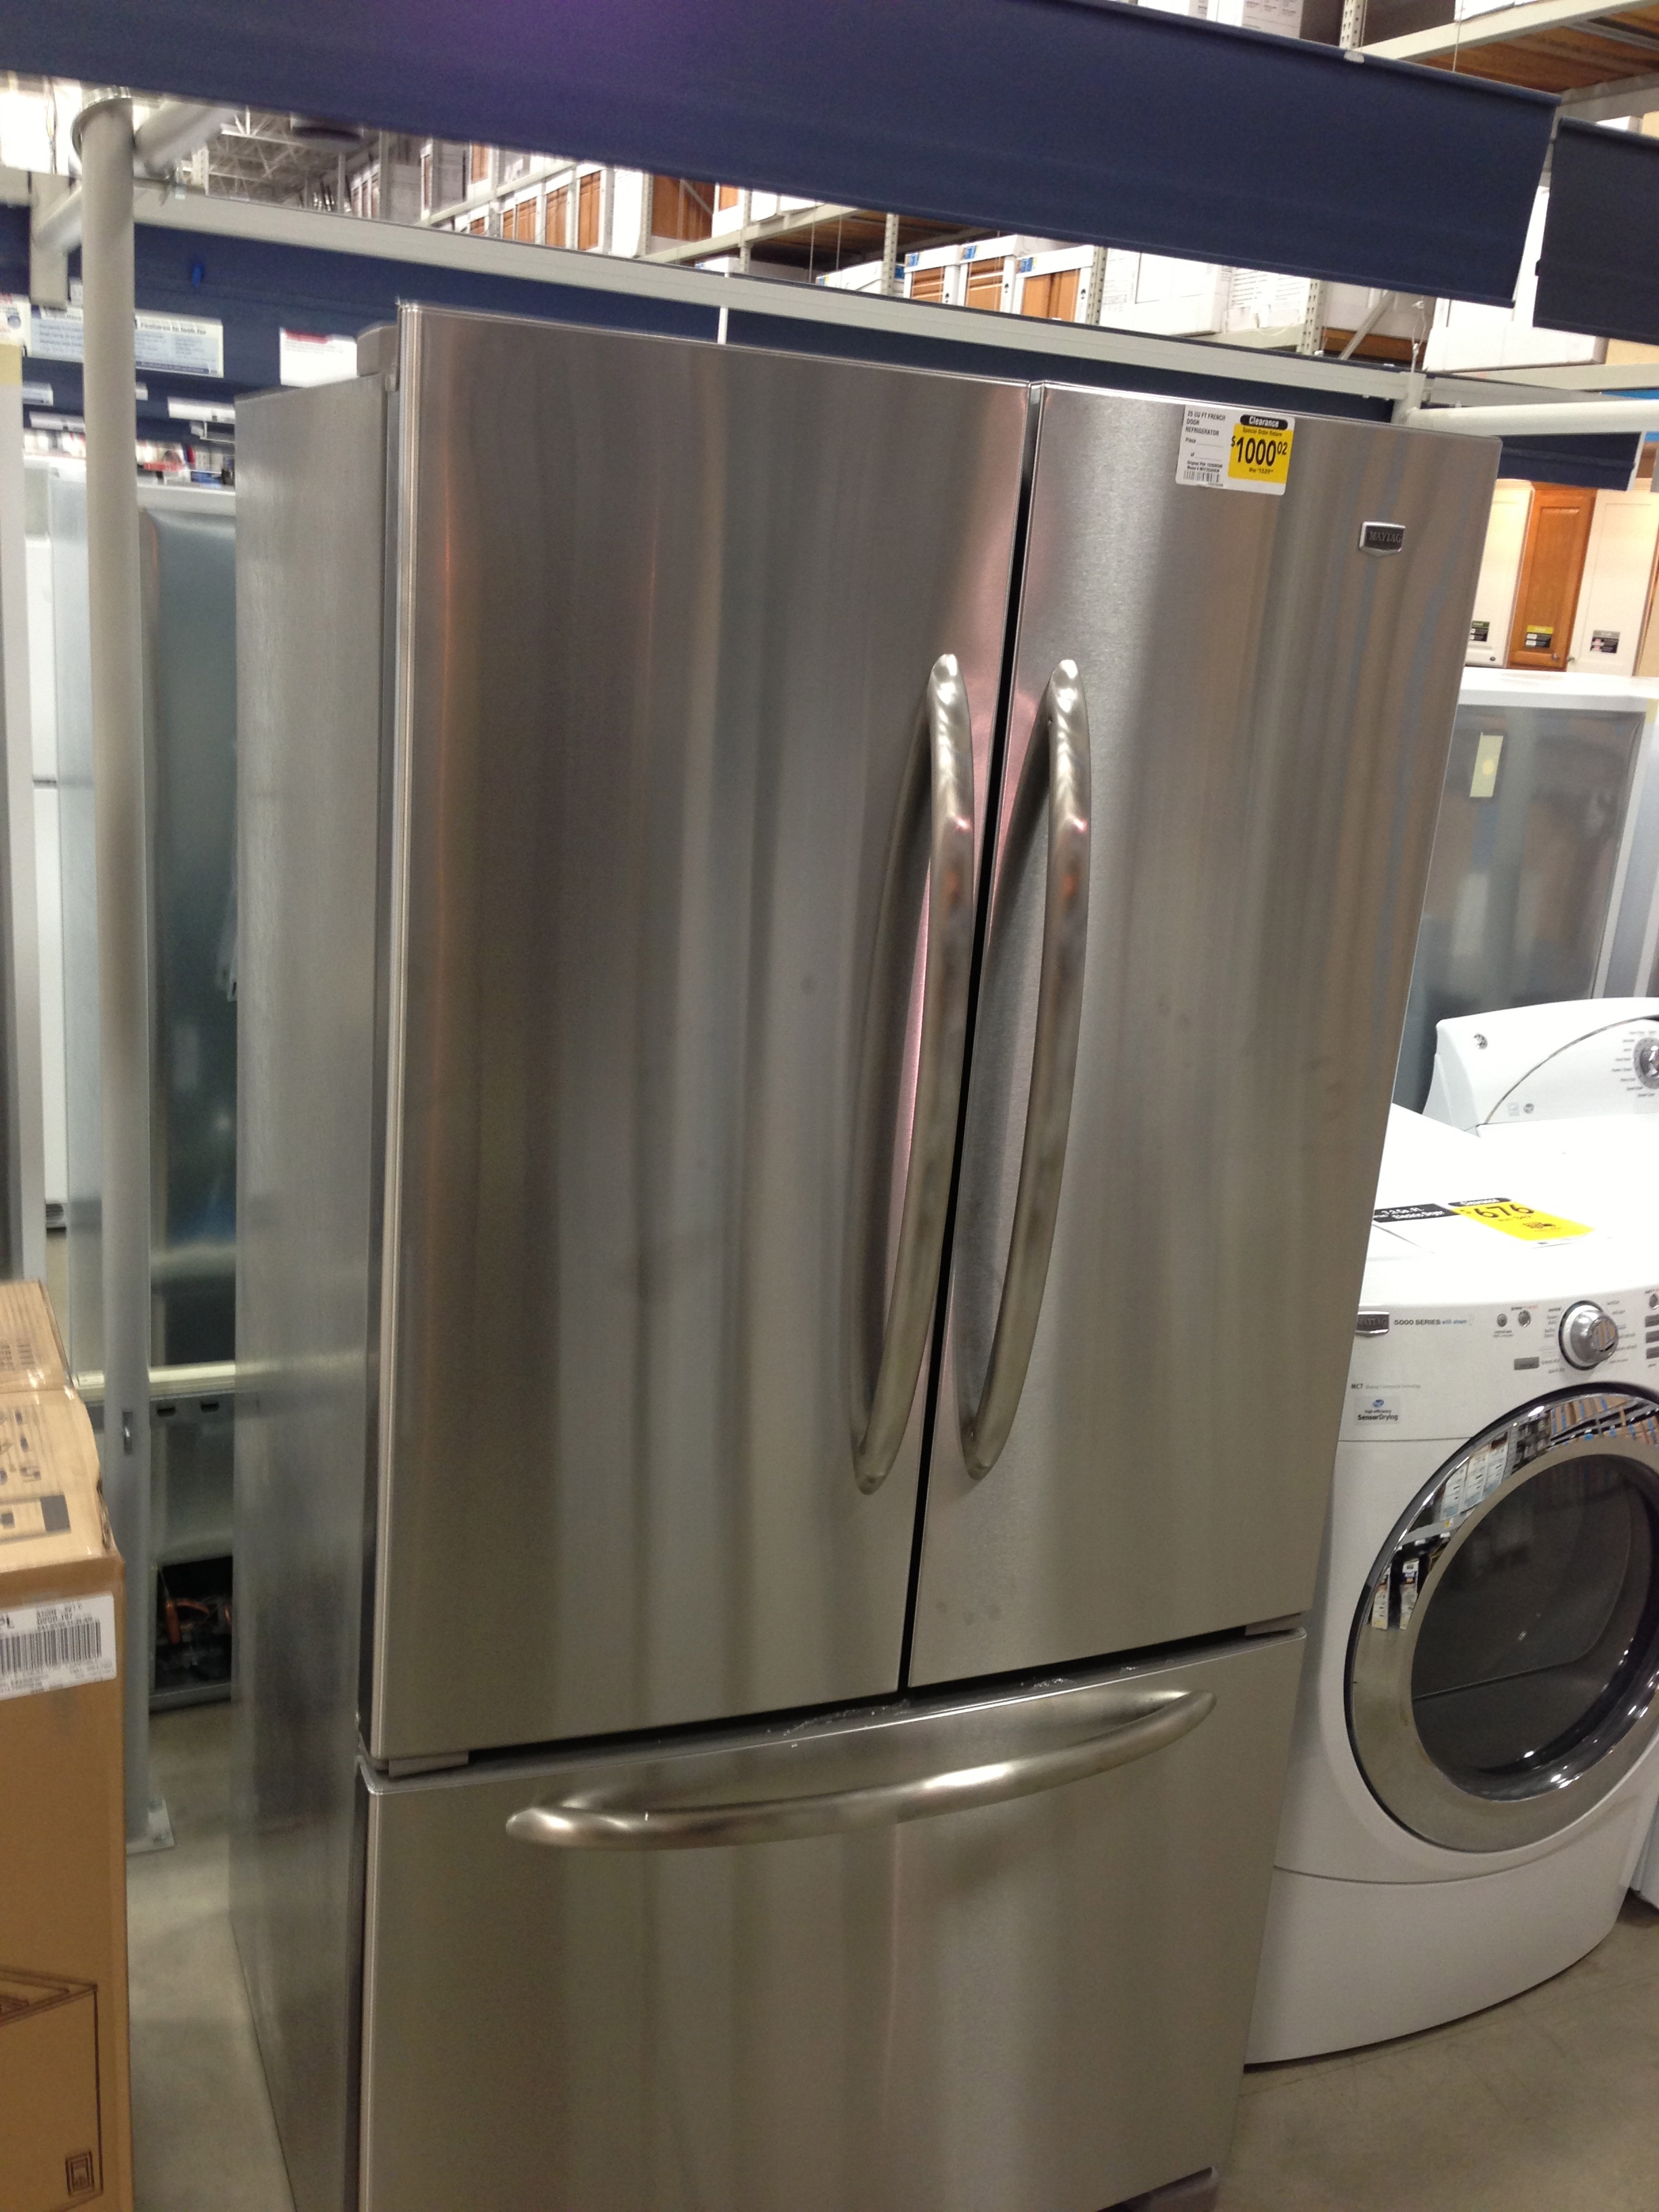 Here is the refrigerator sitting over at Lowes.  They are delivering it on Sunday, which seems weird.